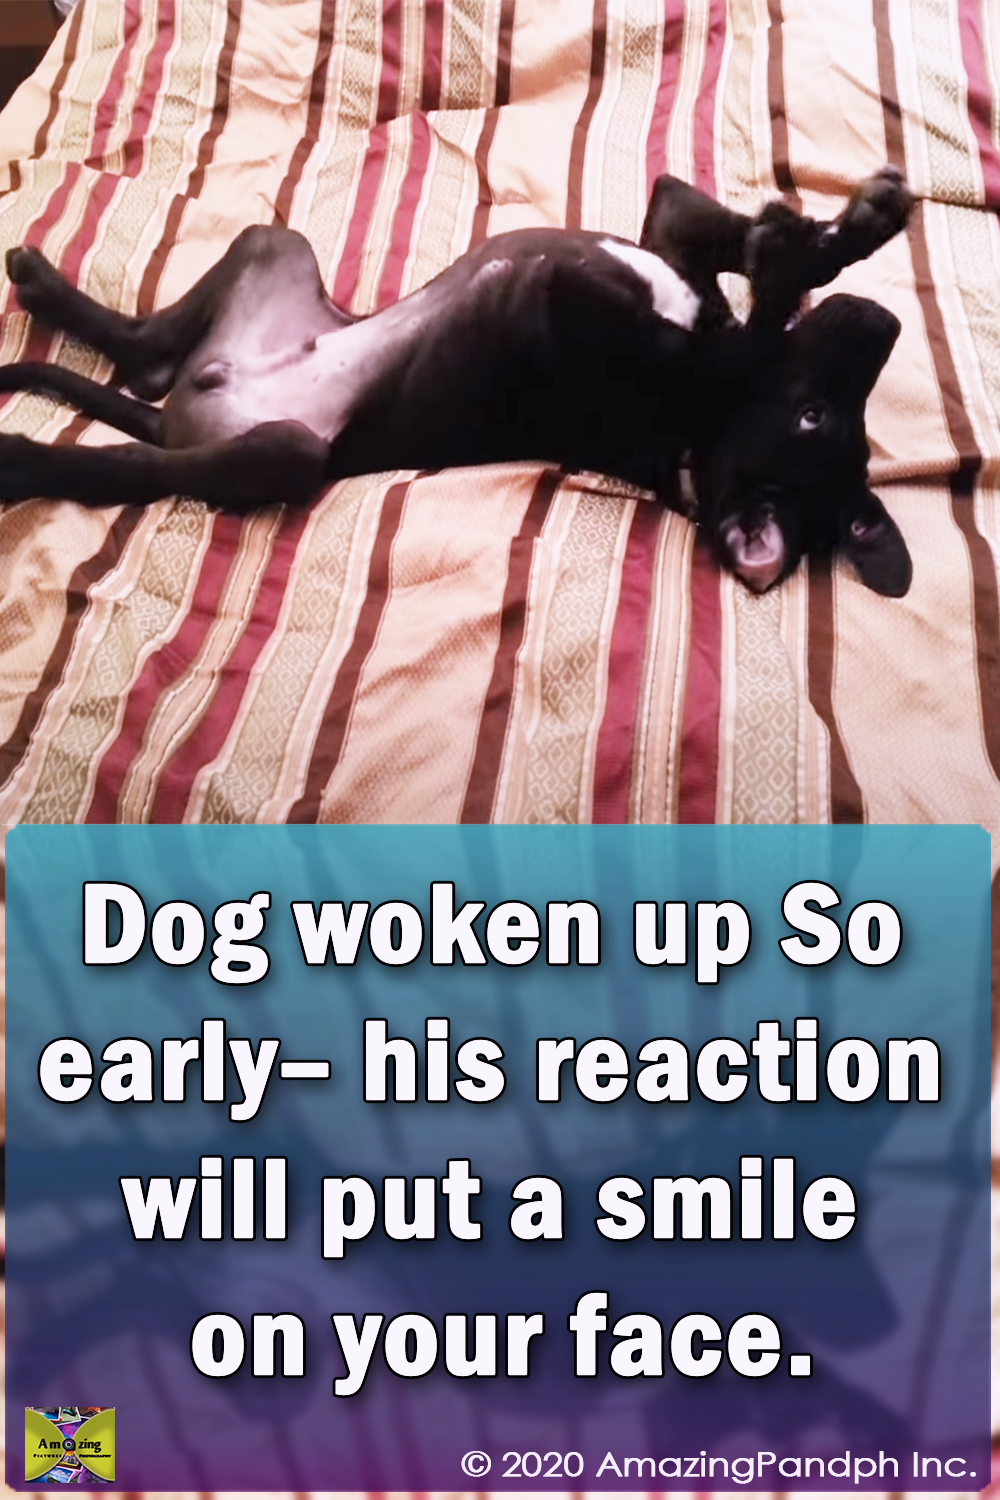 dogs, pets, puppies, puppy, pugs, cute, cute puppies, amazing, wake up, morning, reaction,